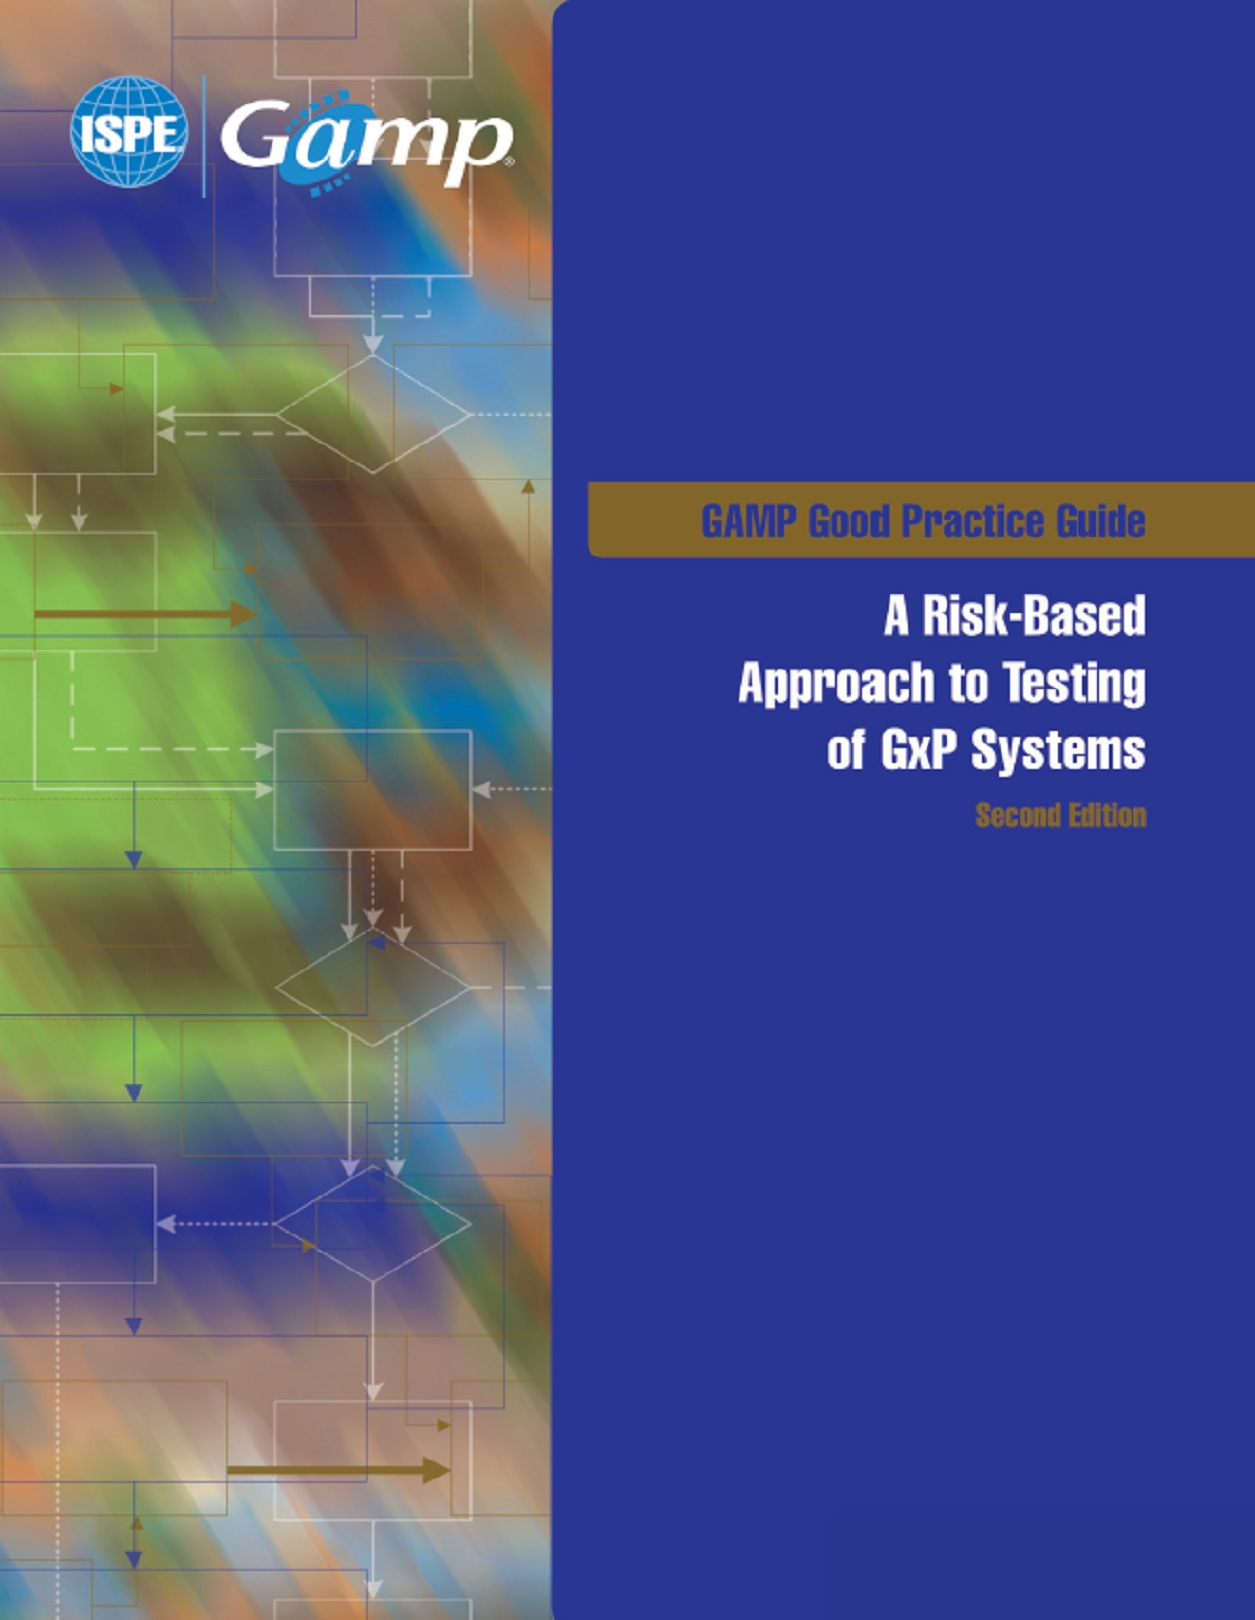 GAMP Good Practice Guide: A Risk-Based Approach to Testing of GxP Systems (Second Edition)